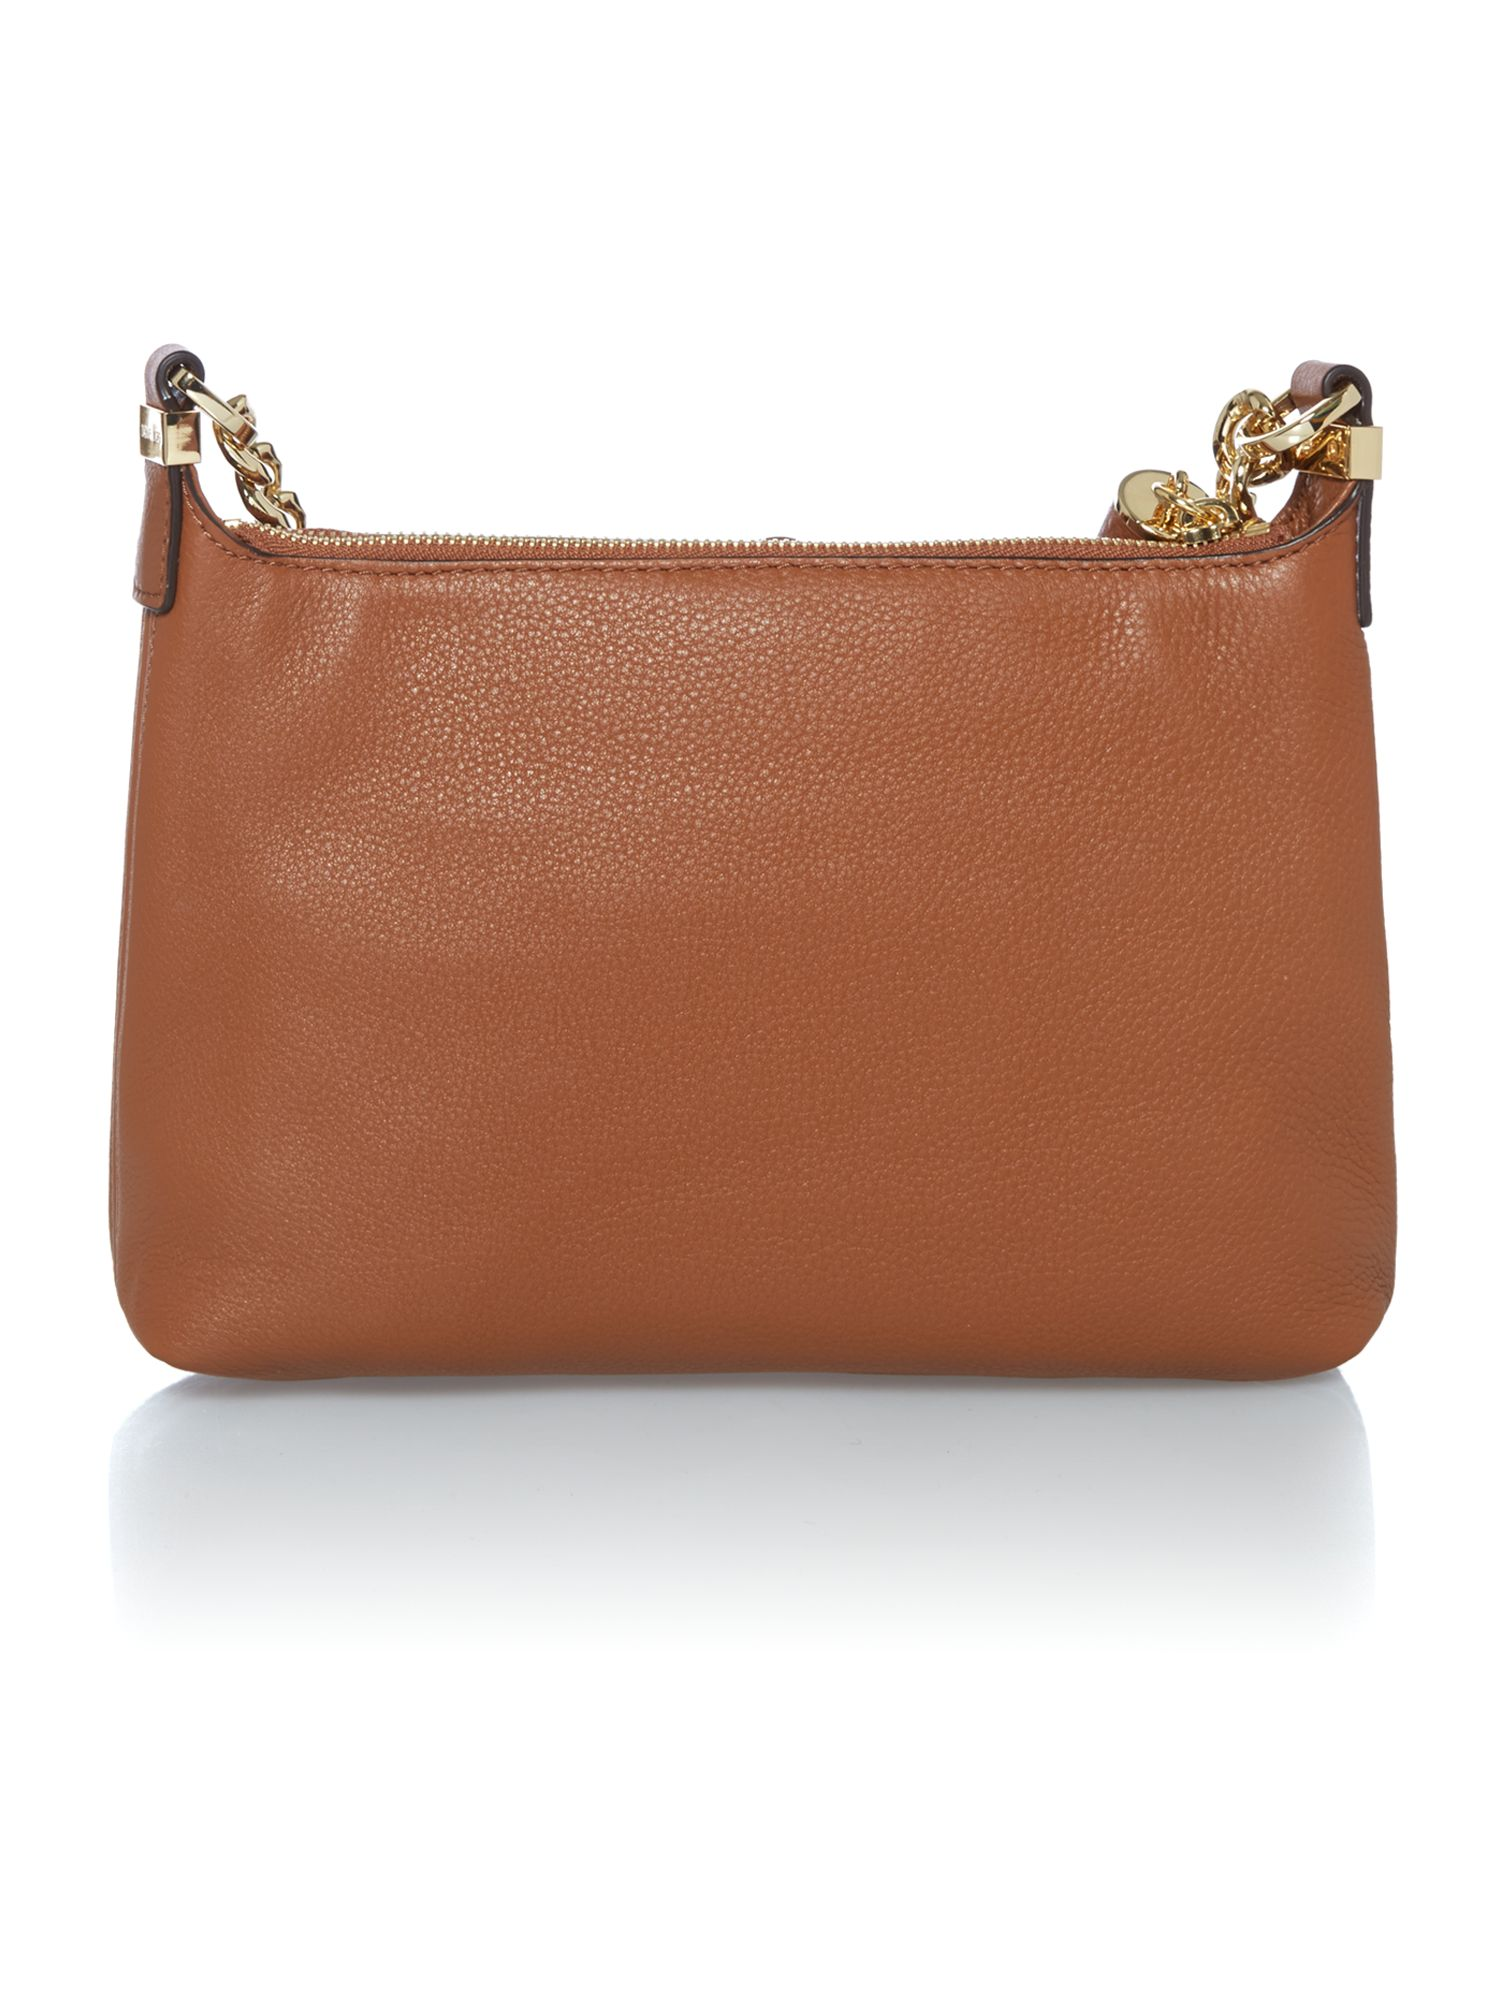 Weston tan zip top cross body bag